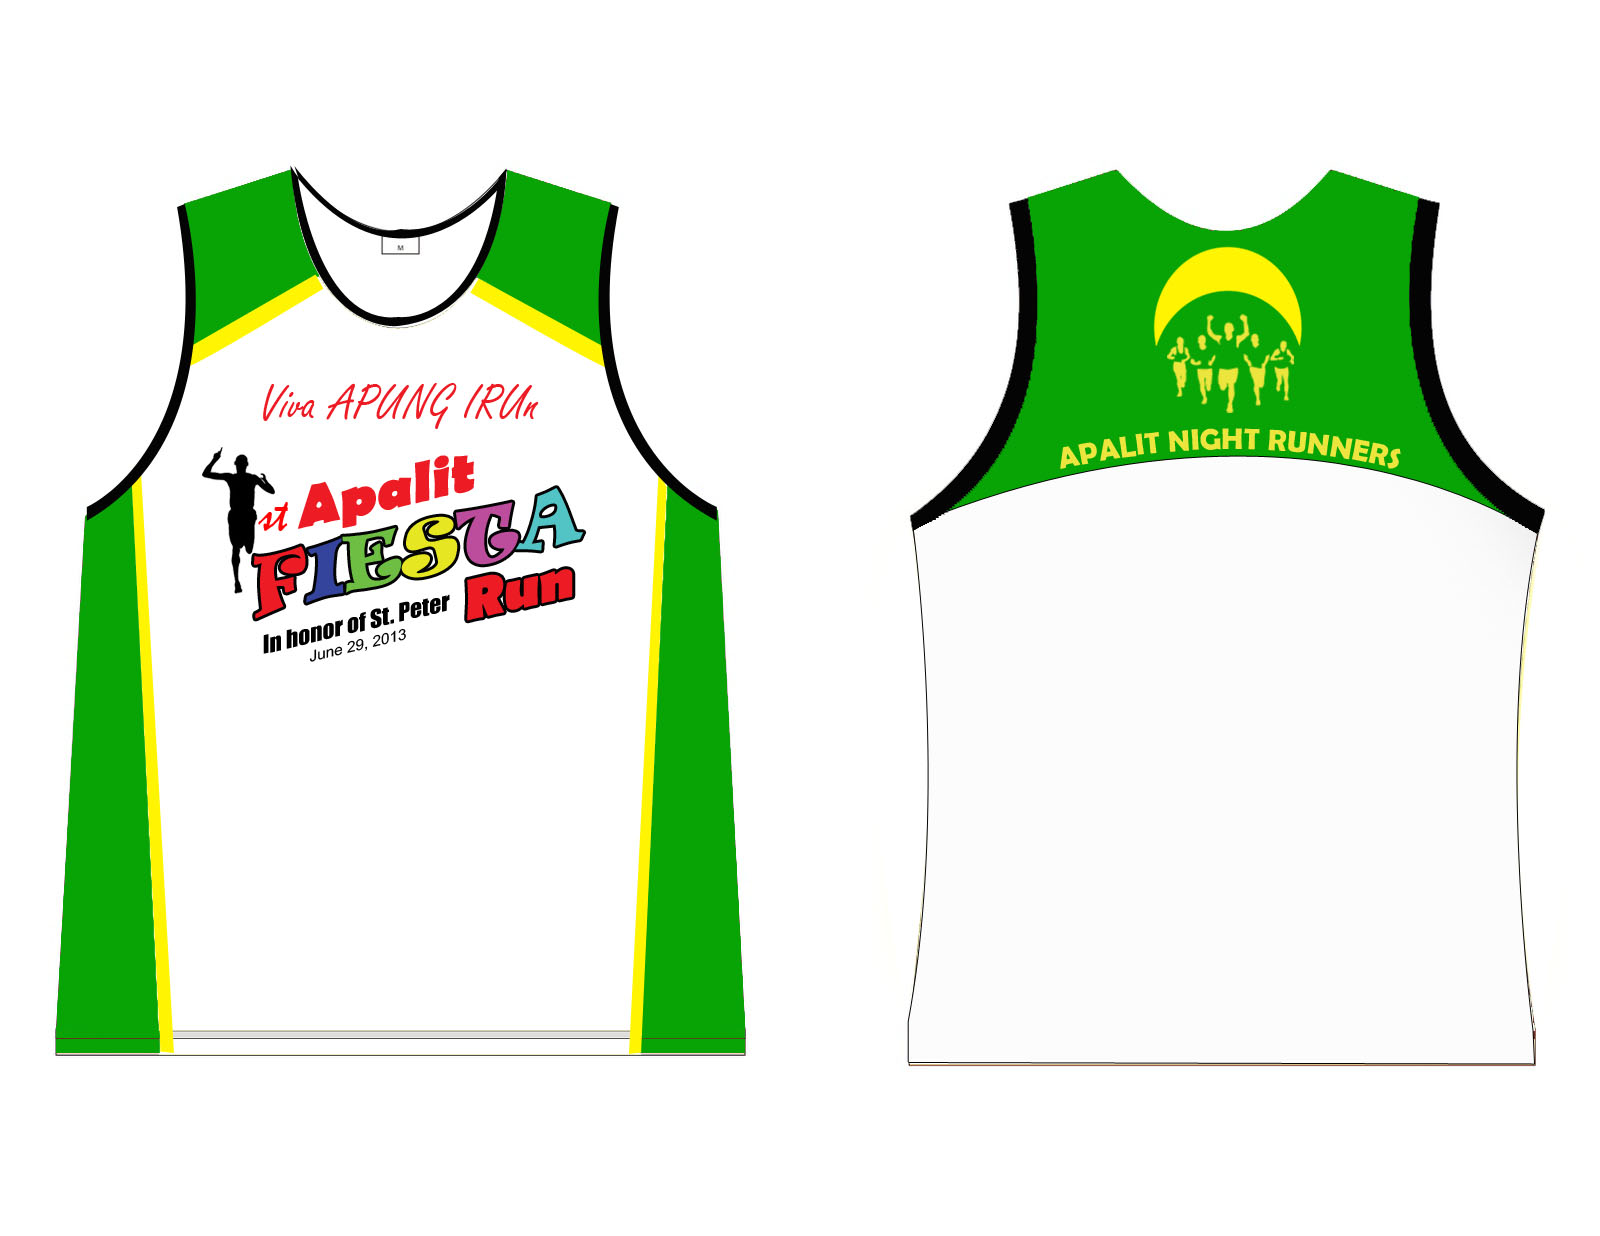 viva-apung-irun-2013-updated-singlet-design